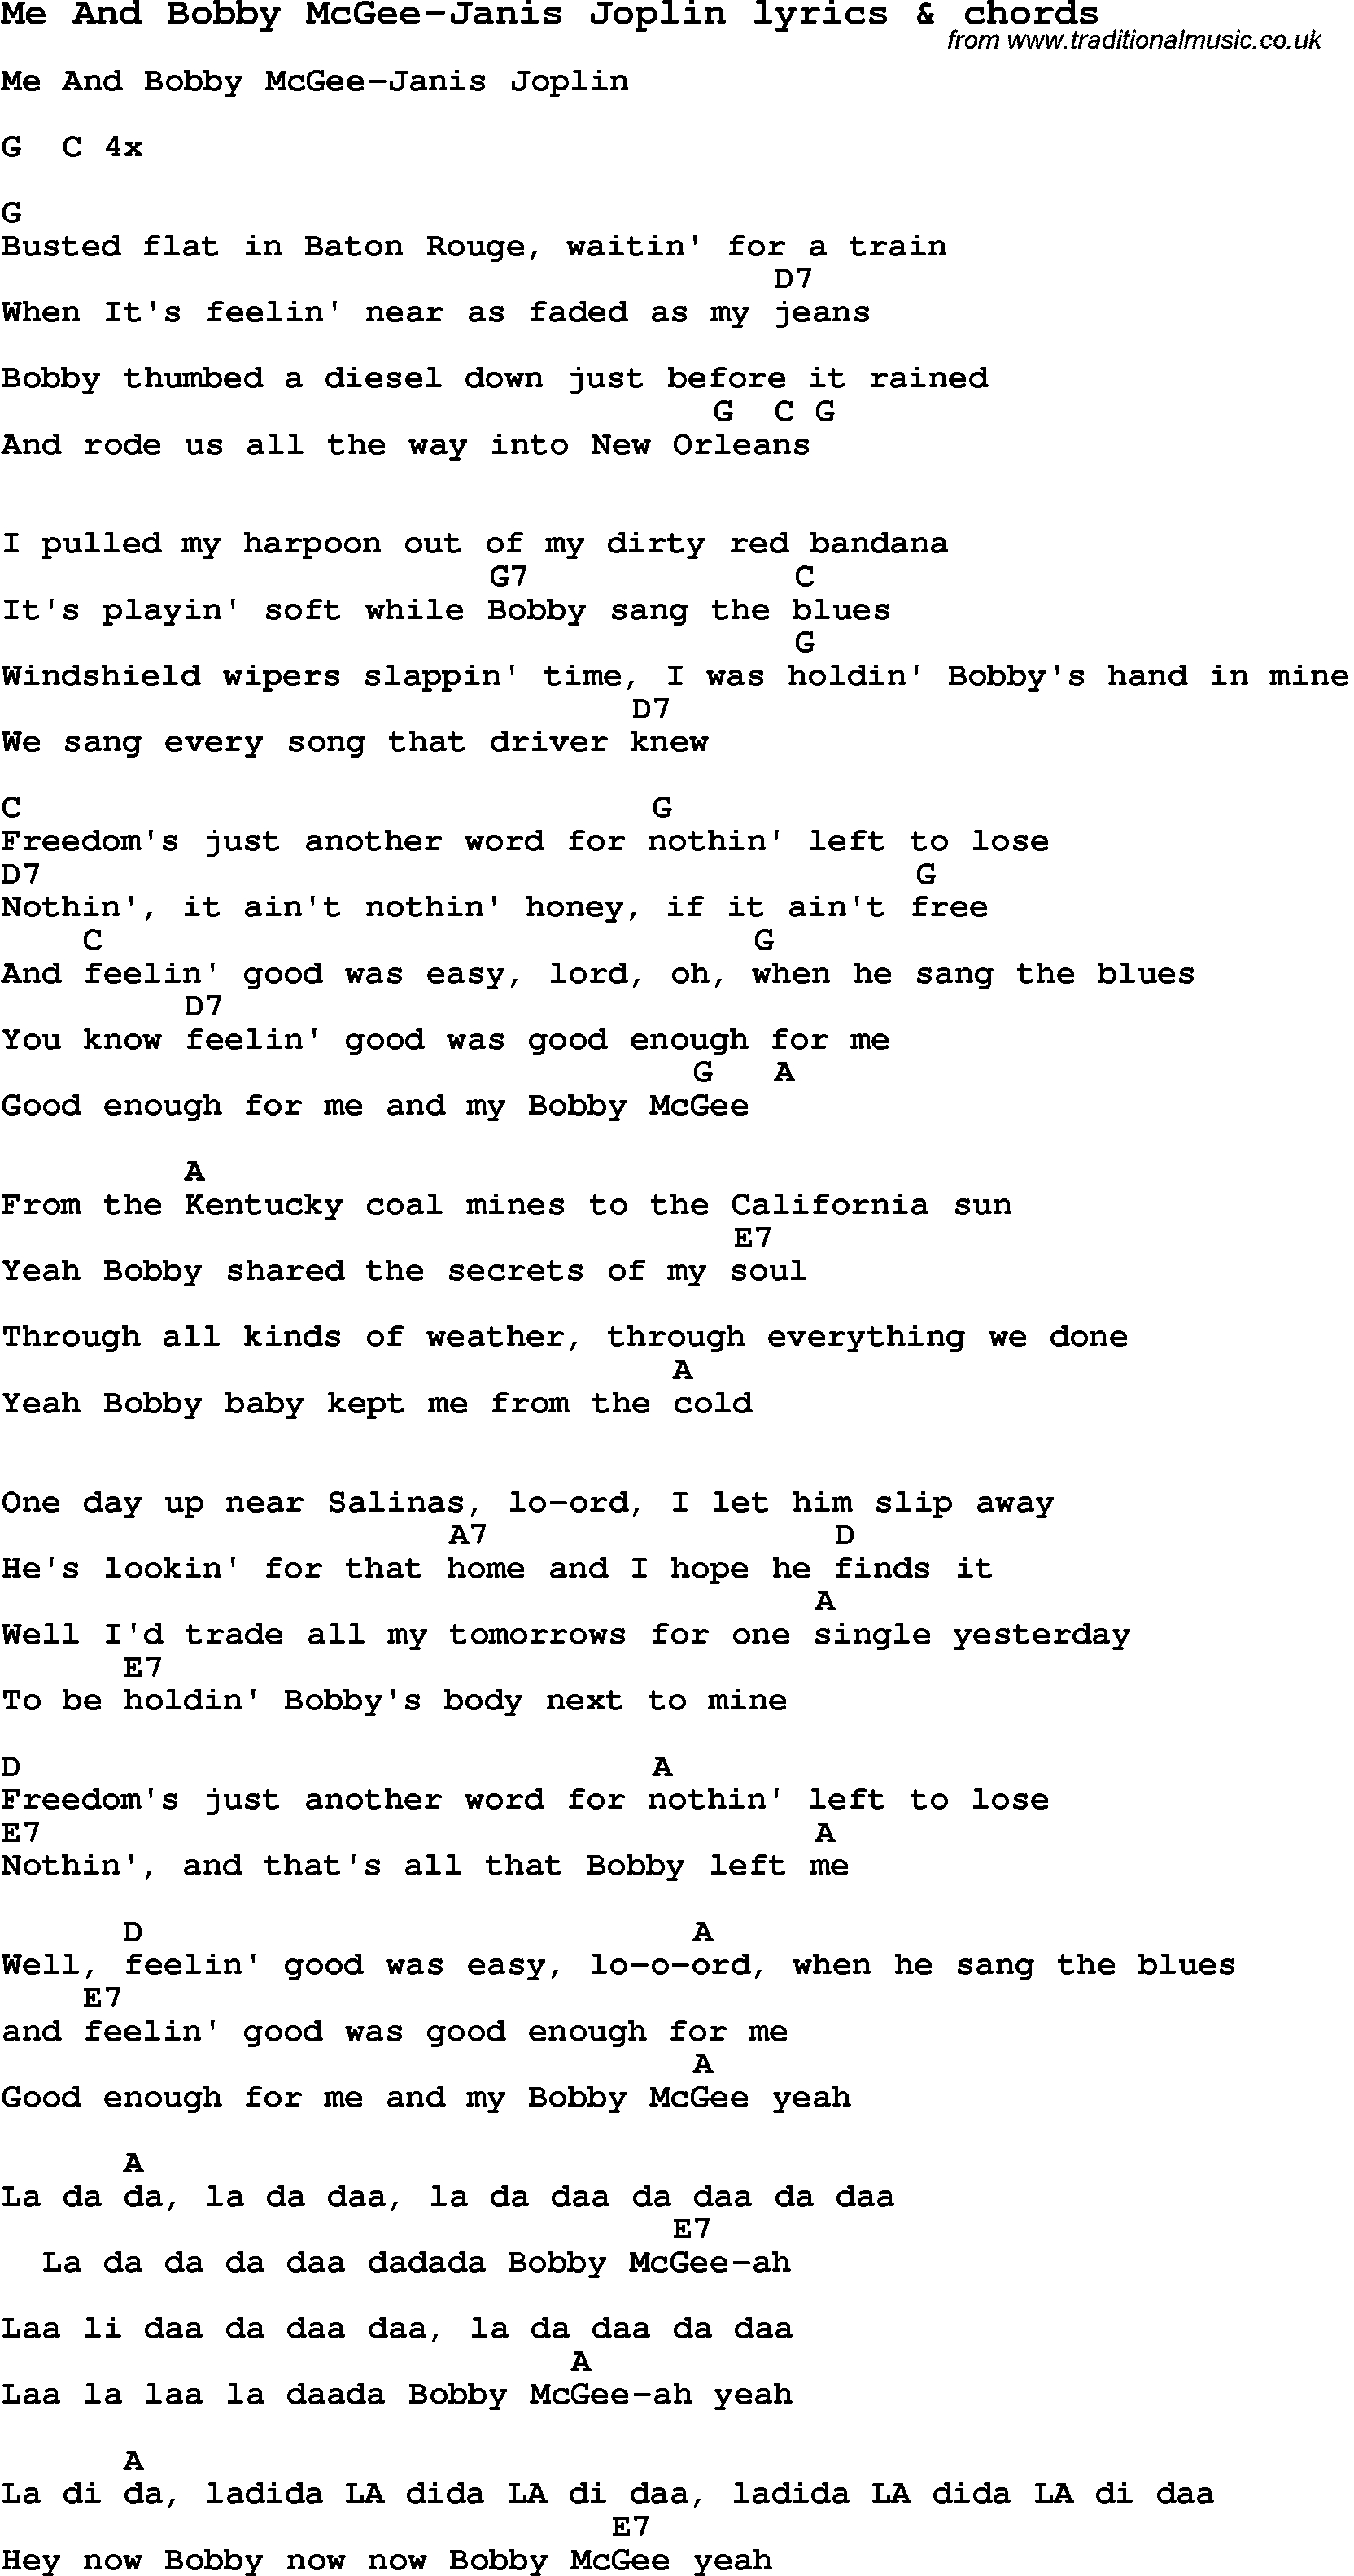 Me And Bobby Mcgee Chords Love Song Lyrics Forme And Bob Mcgee Janis Joplin With Chords